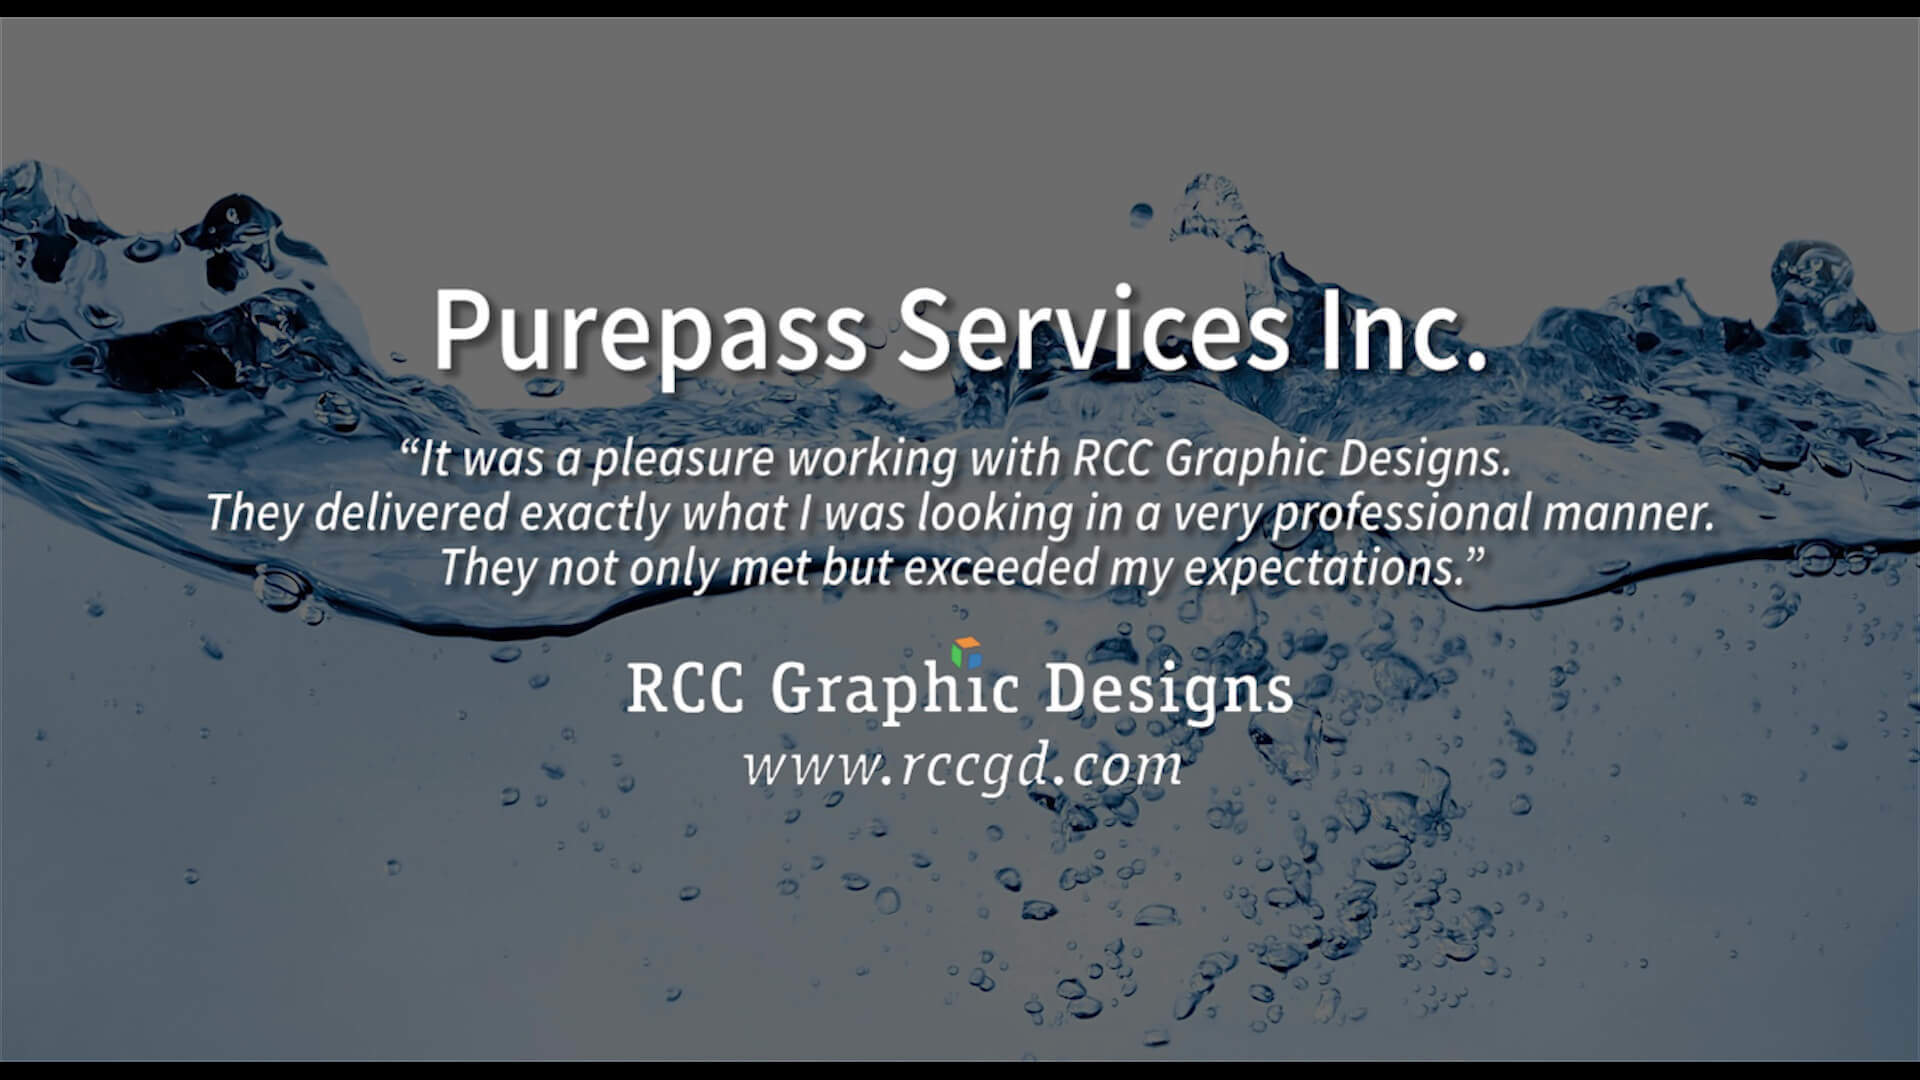 Purepass Services Inc